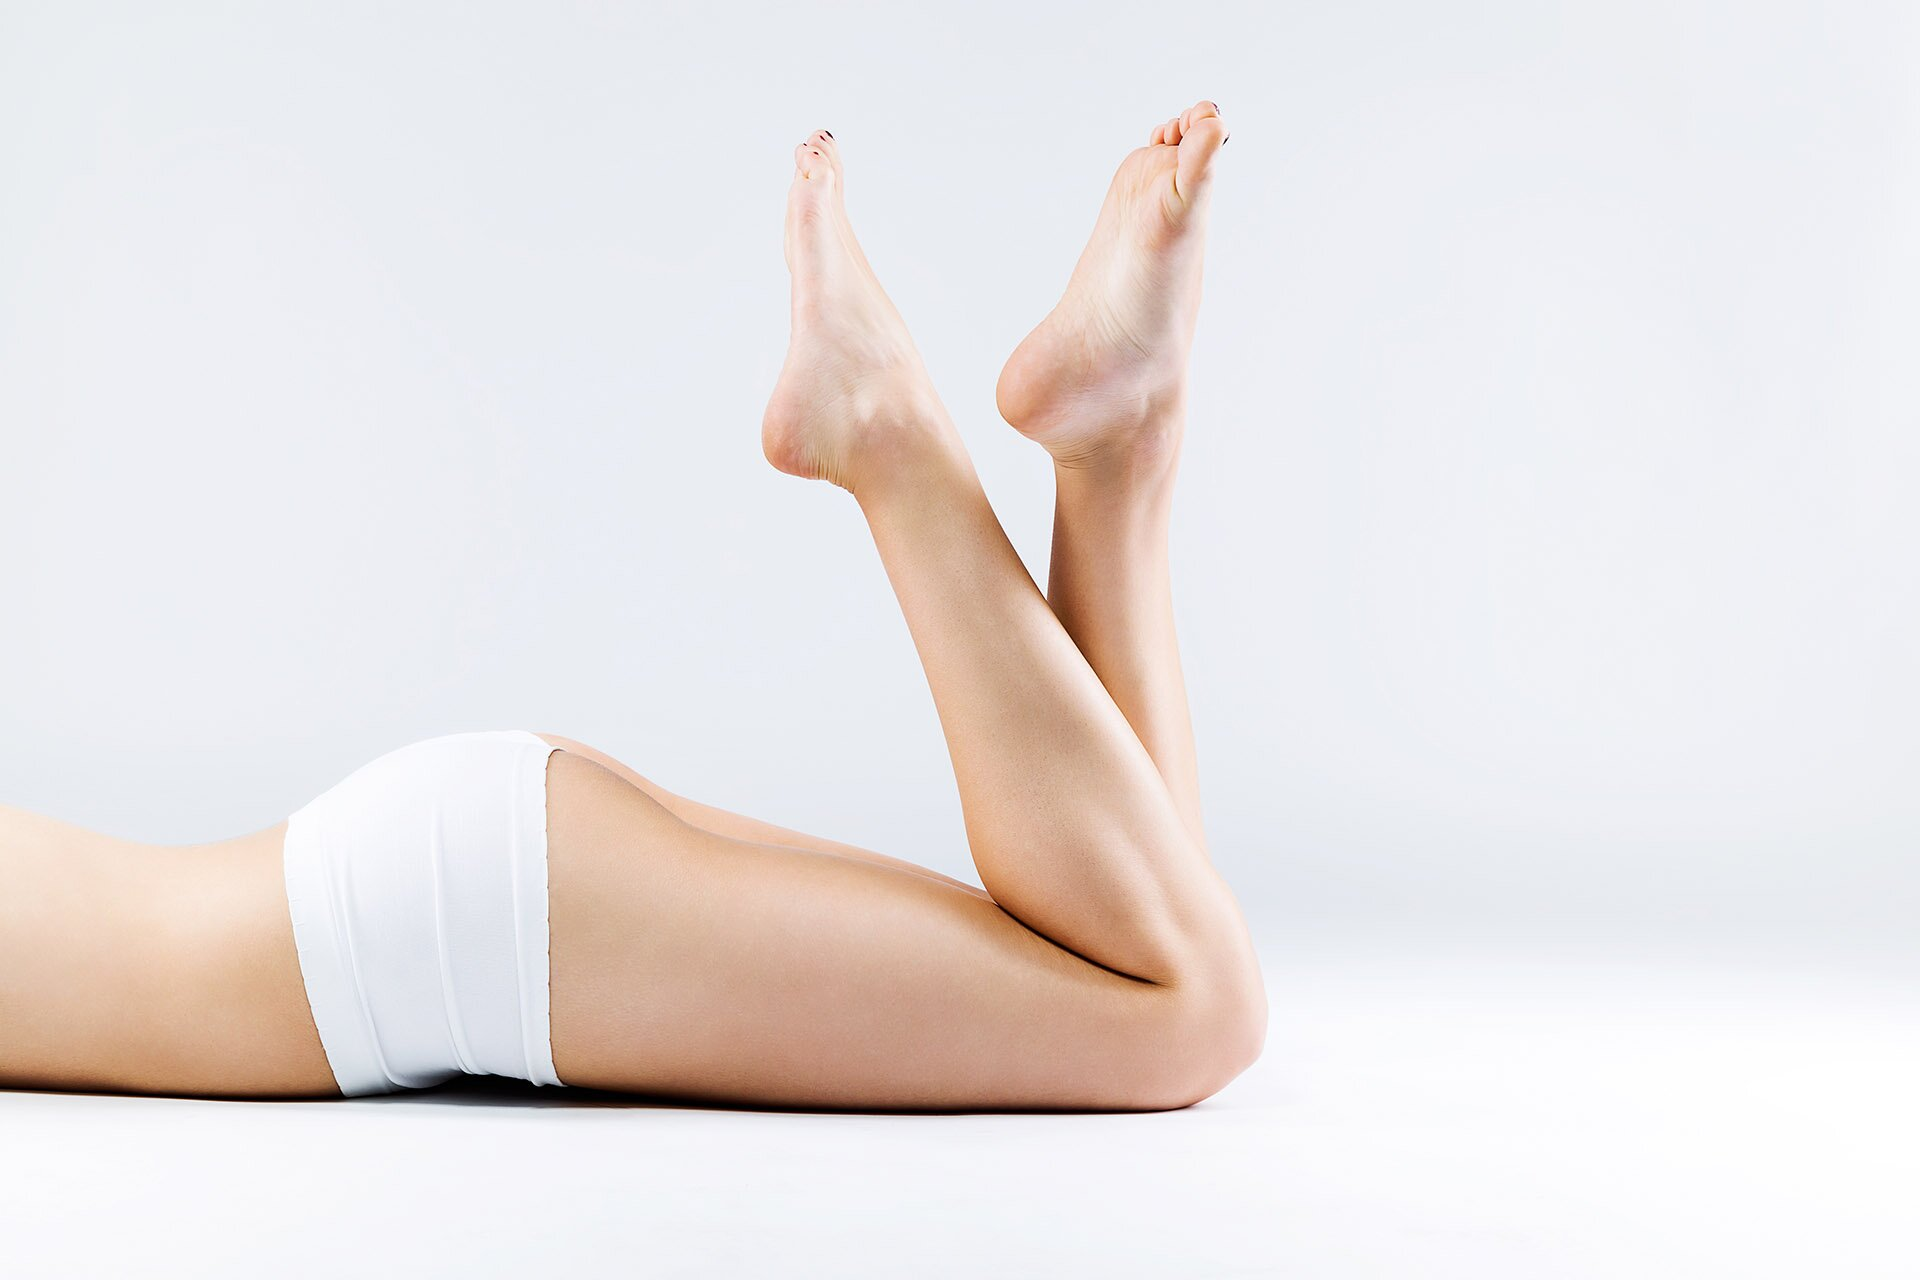 Perfect smooth and waxed woman legs with feet pointing up.